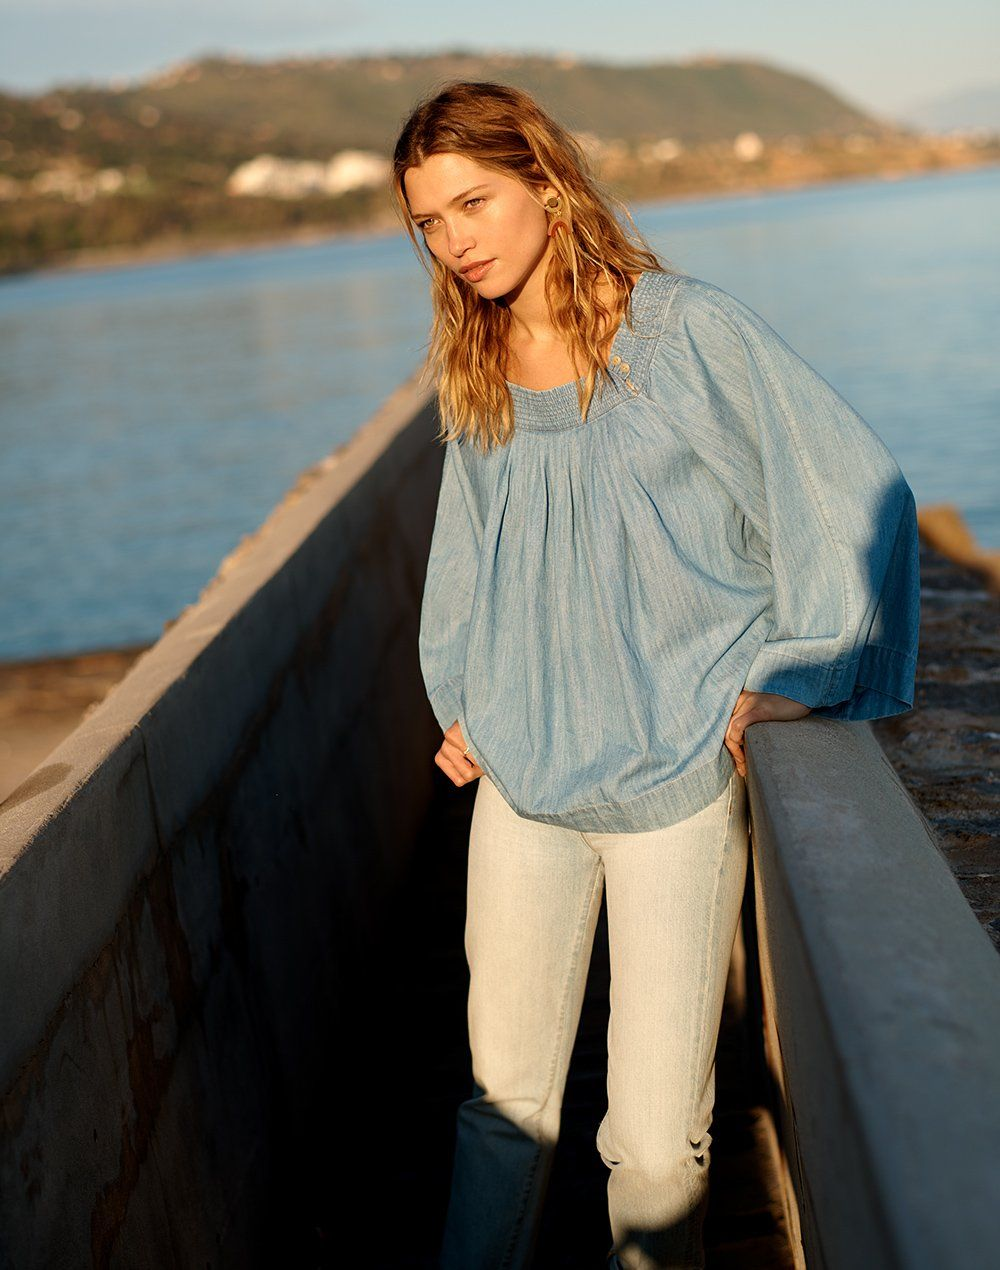 c808fabeb1 madewell denim square-neck top worn with the perfect summer jean ...